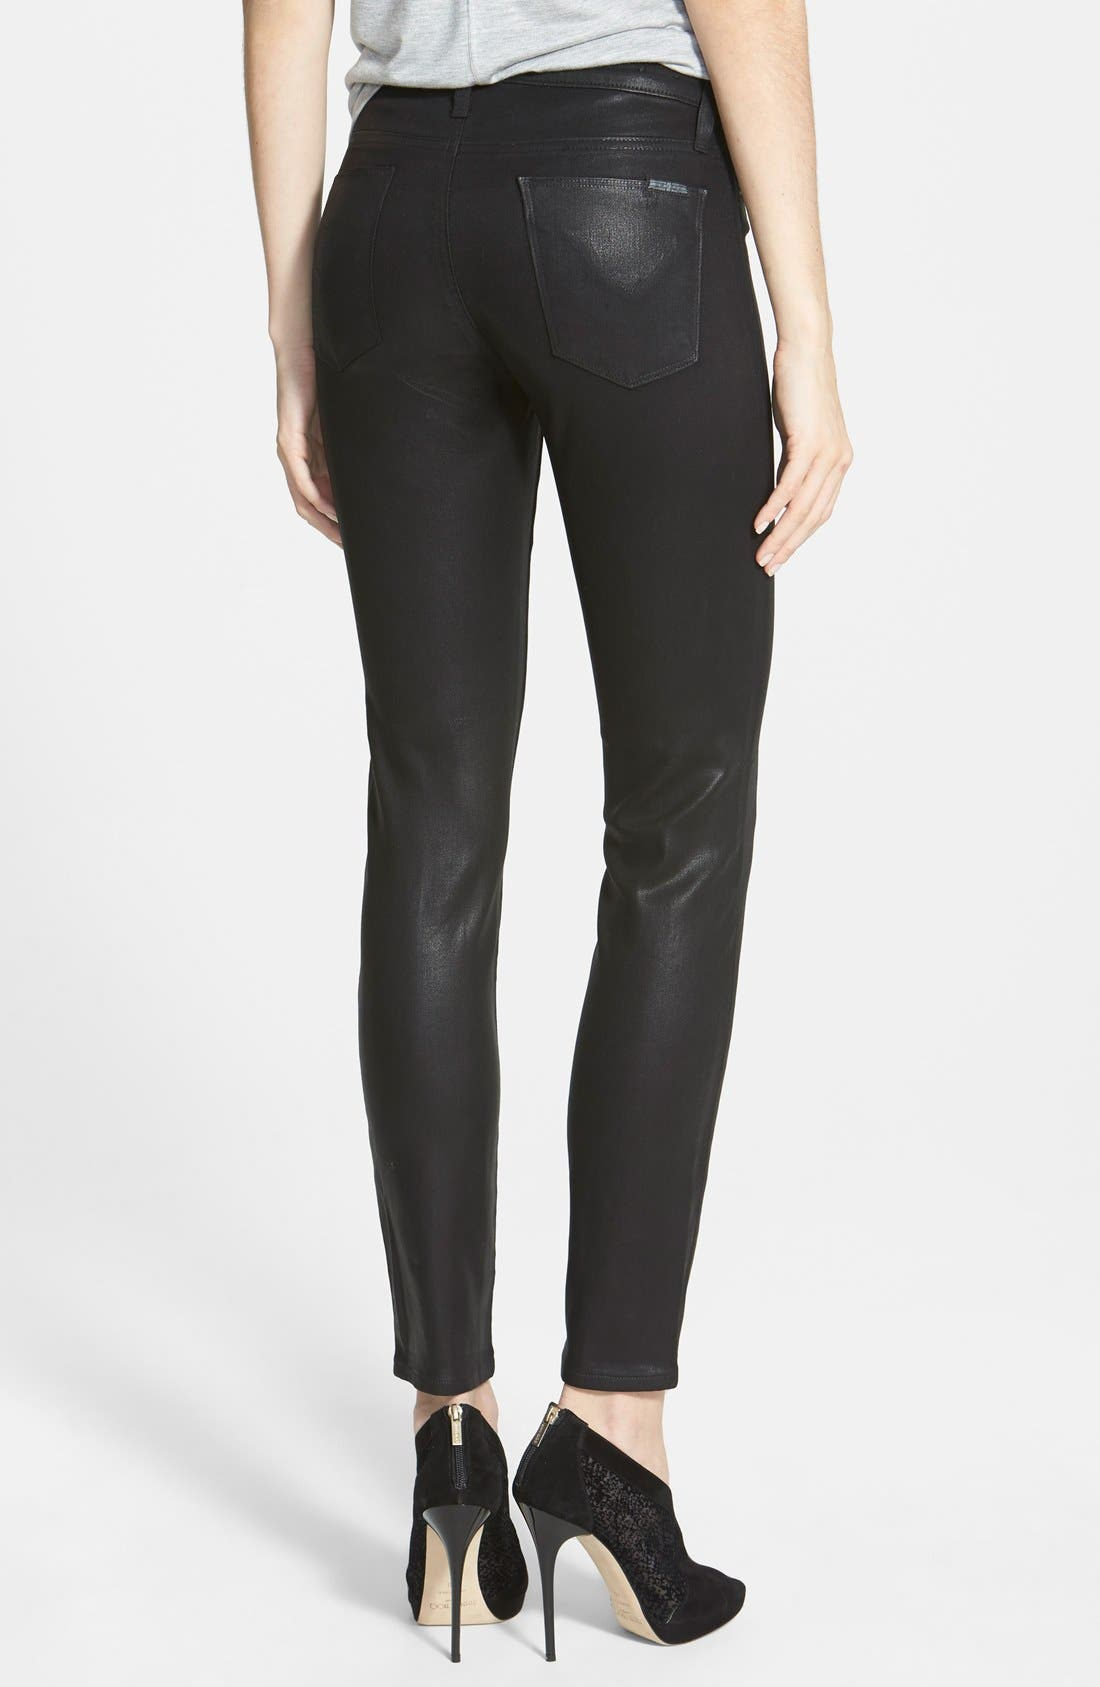 'Nico' Mid Rise Skinny Stretch Jeans,                             Alternate thumbnail 2, color,                             001